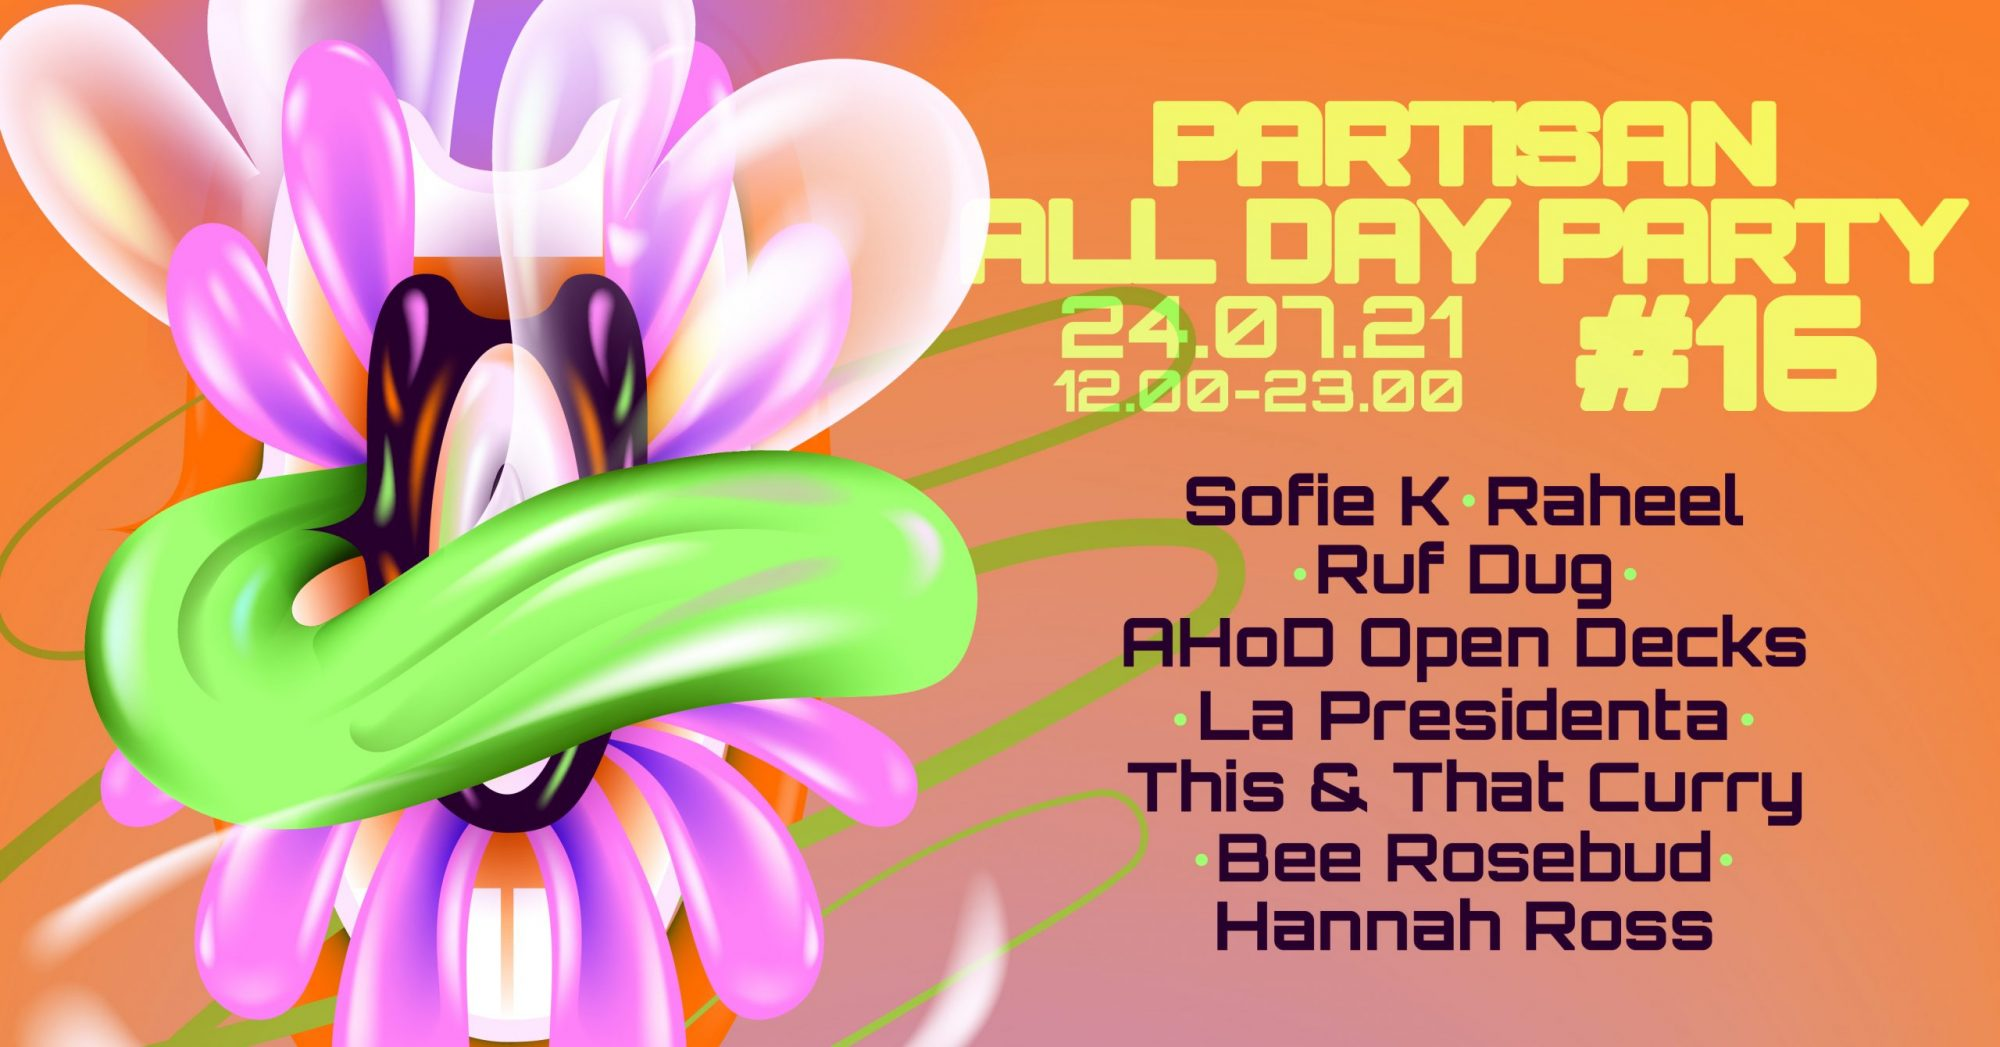 The Partisan All Day Party is back!